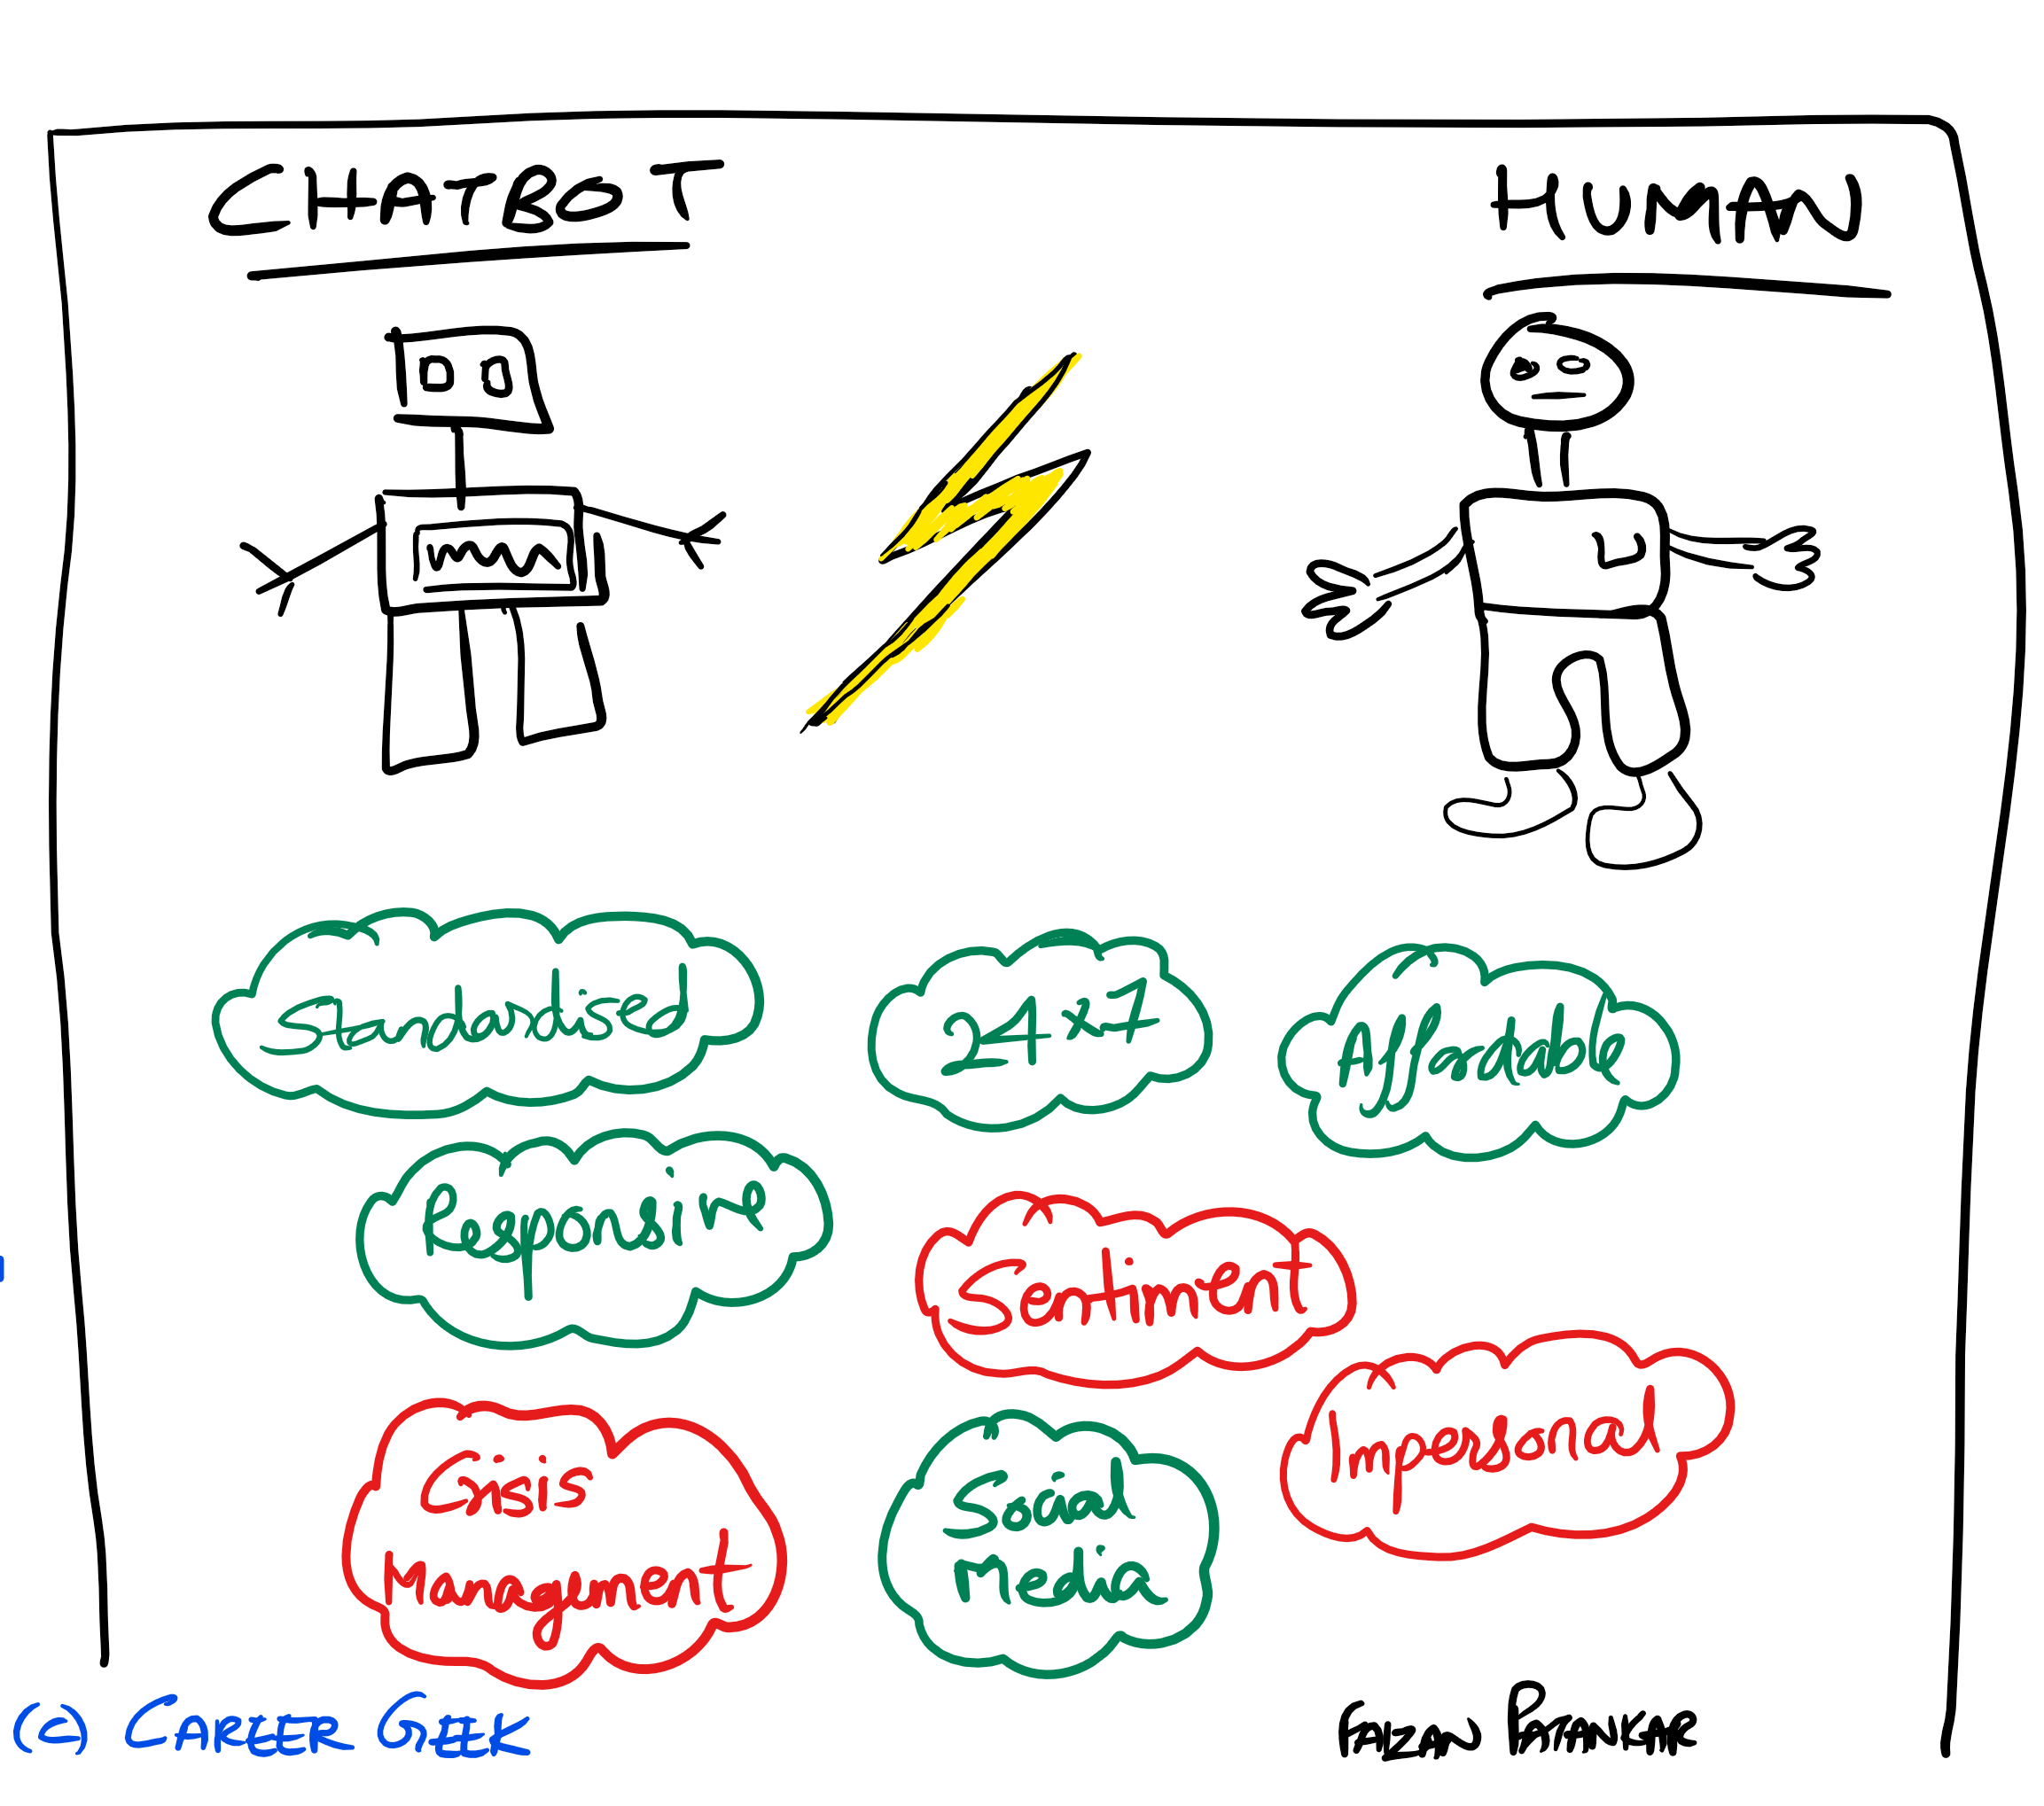 pros and cons of chatbots vs humans